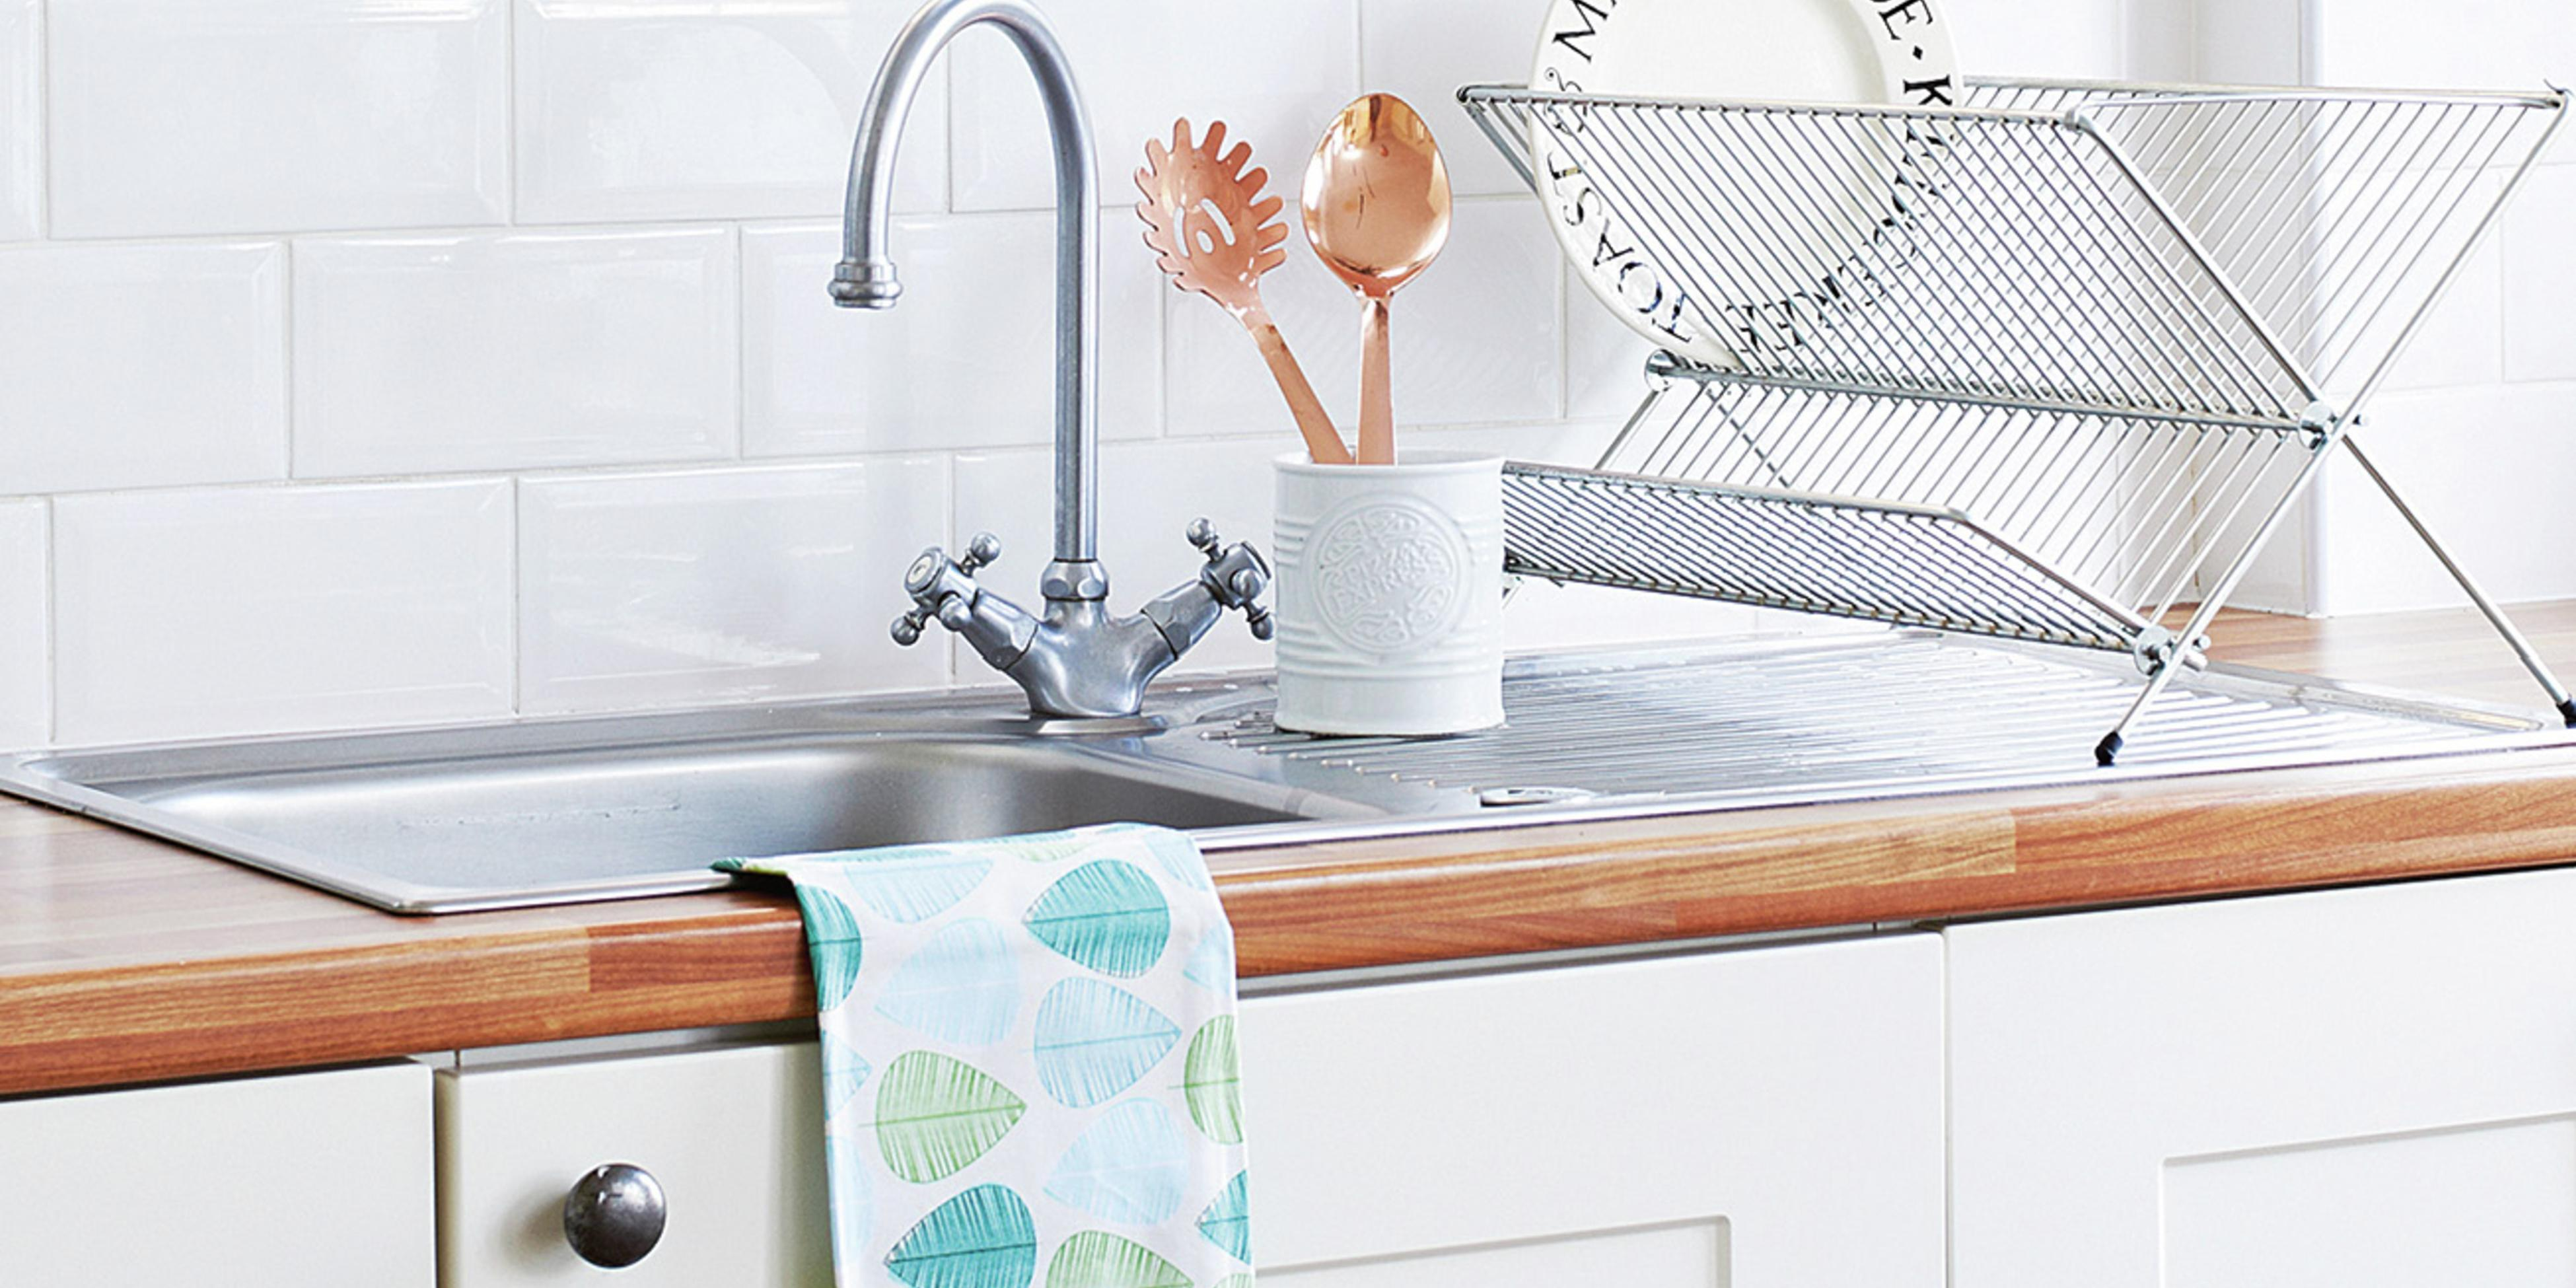 Kitchen timber benchtop with over-mounted stainless steel sink and a drying rack